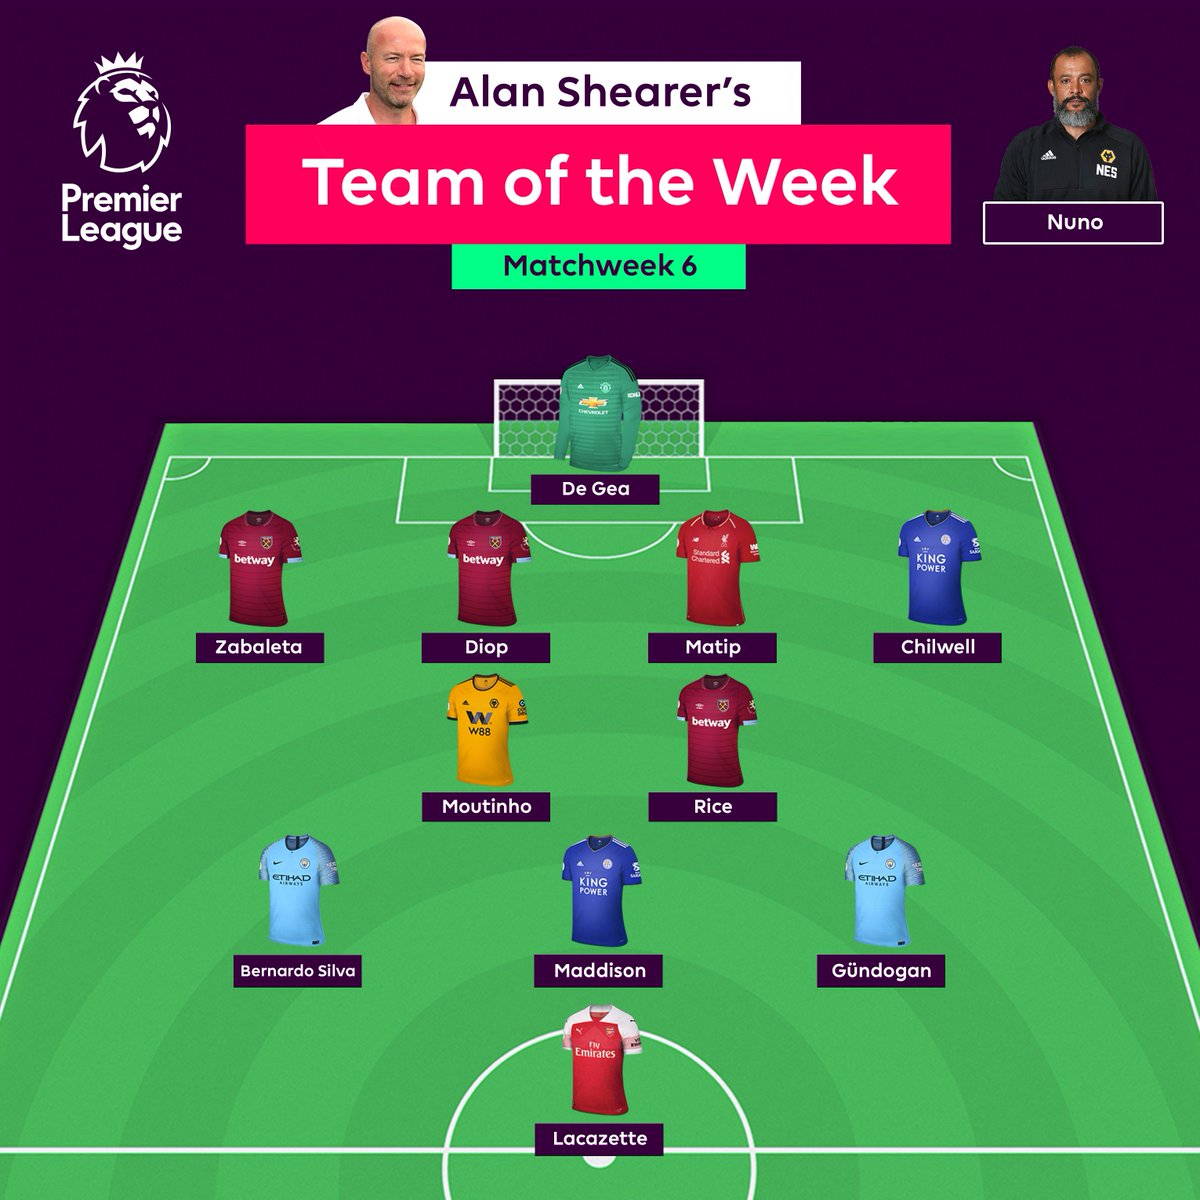 Three @WestHamUtd players in @alanshearer's #PL Team of the Week   Thoughts on his Matchweek 6 selections?